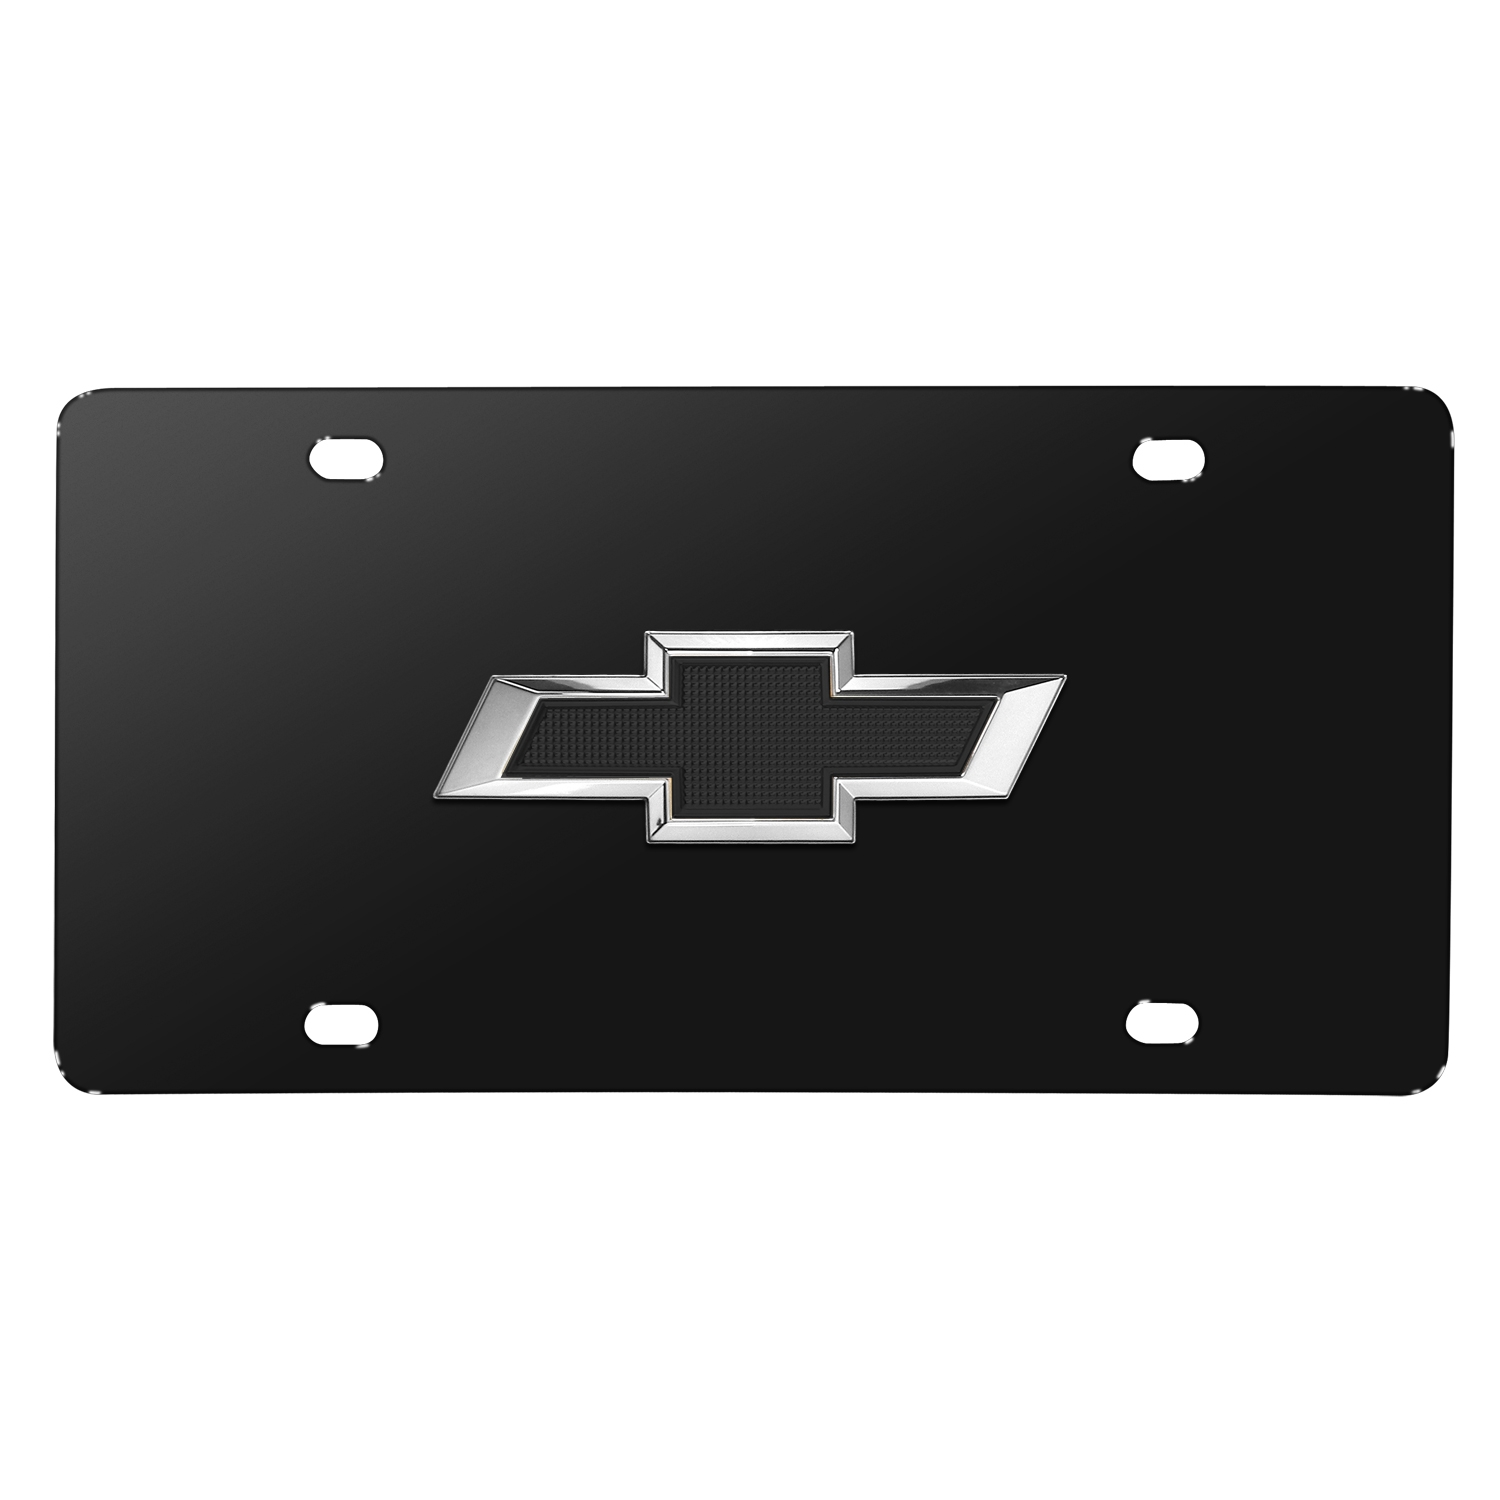 Chevrolet Black Bowtie 3D Logo Black Stainless Steel License Plate